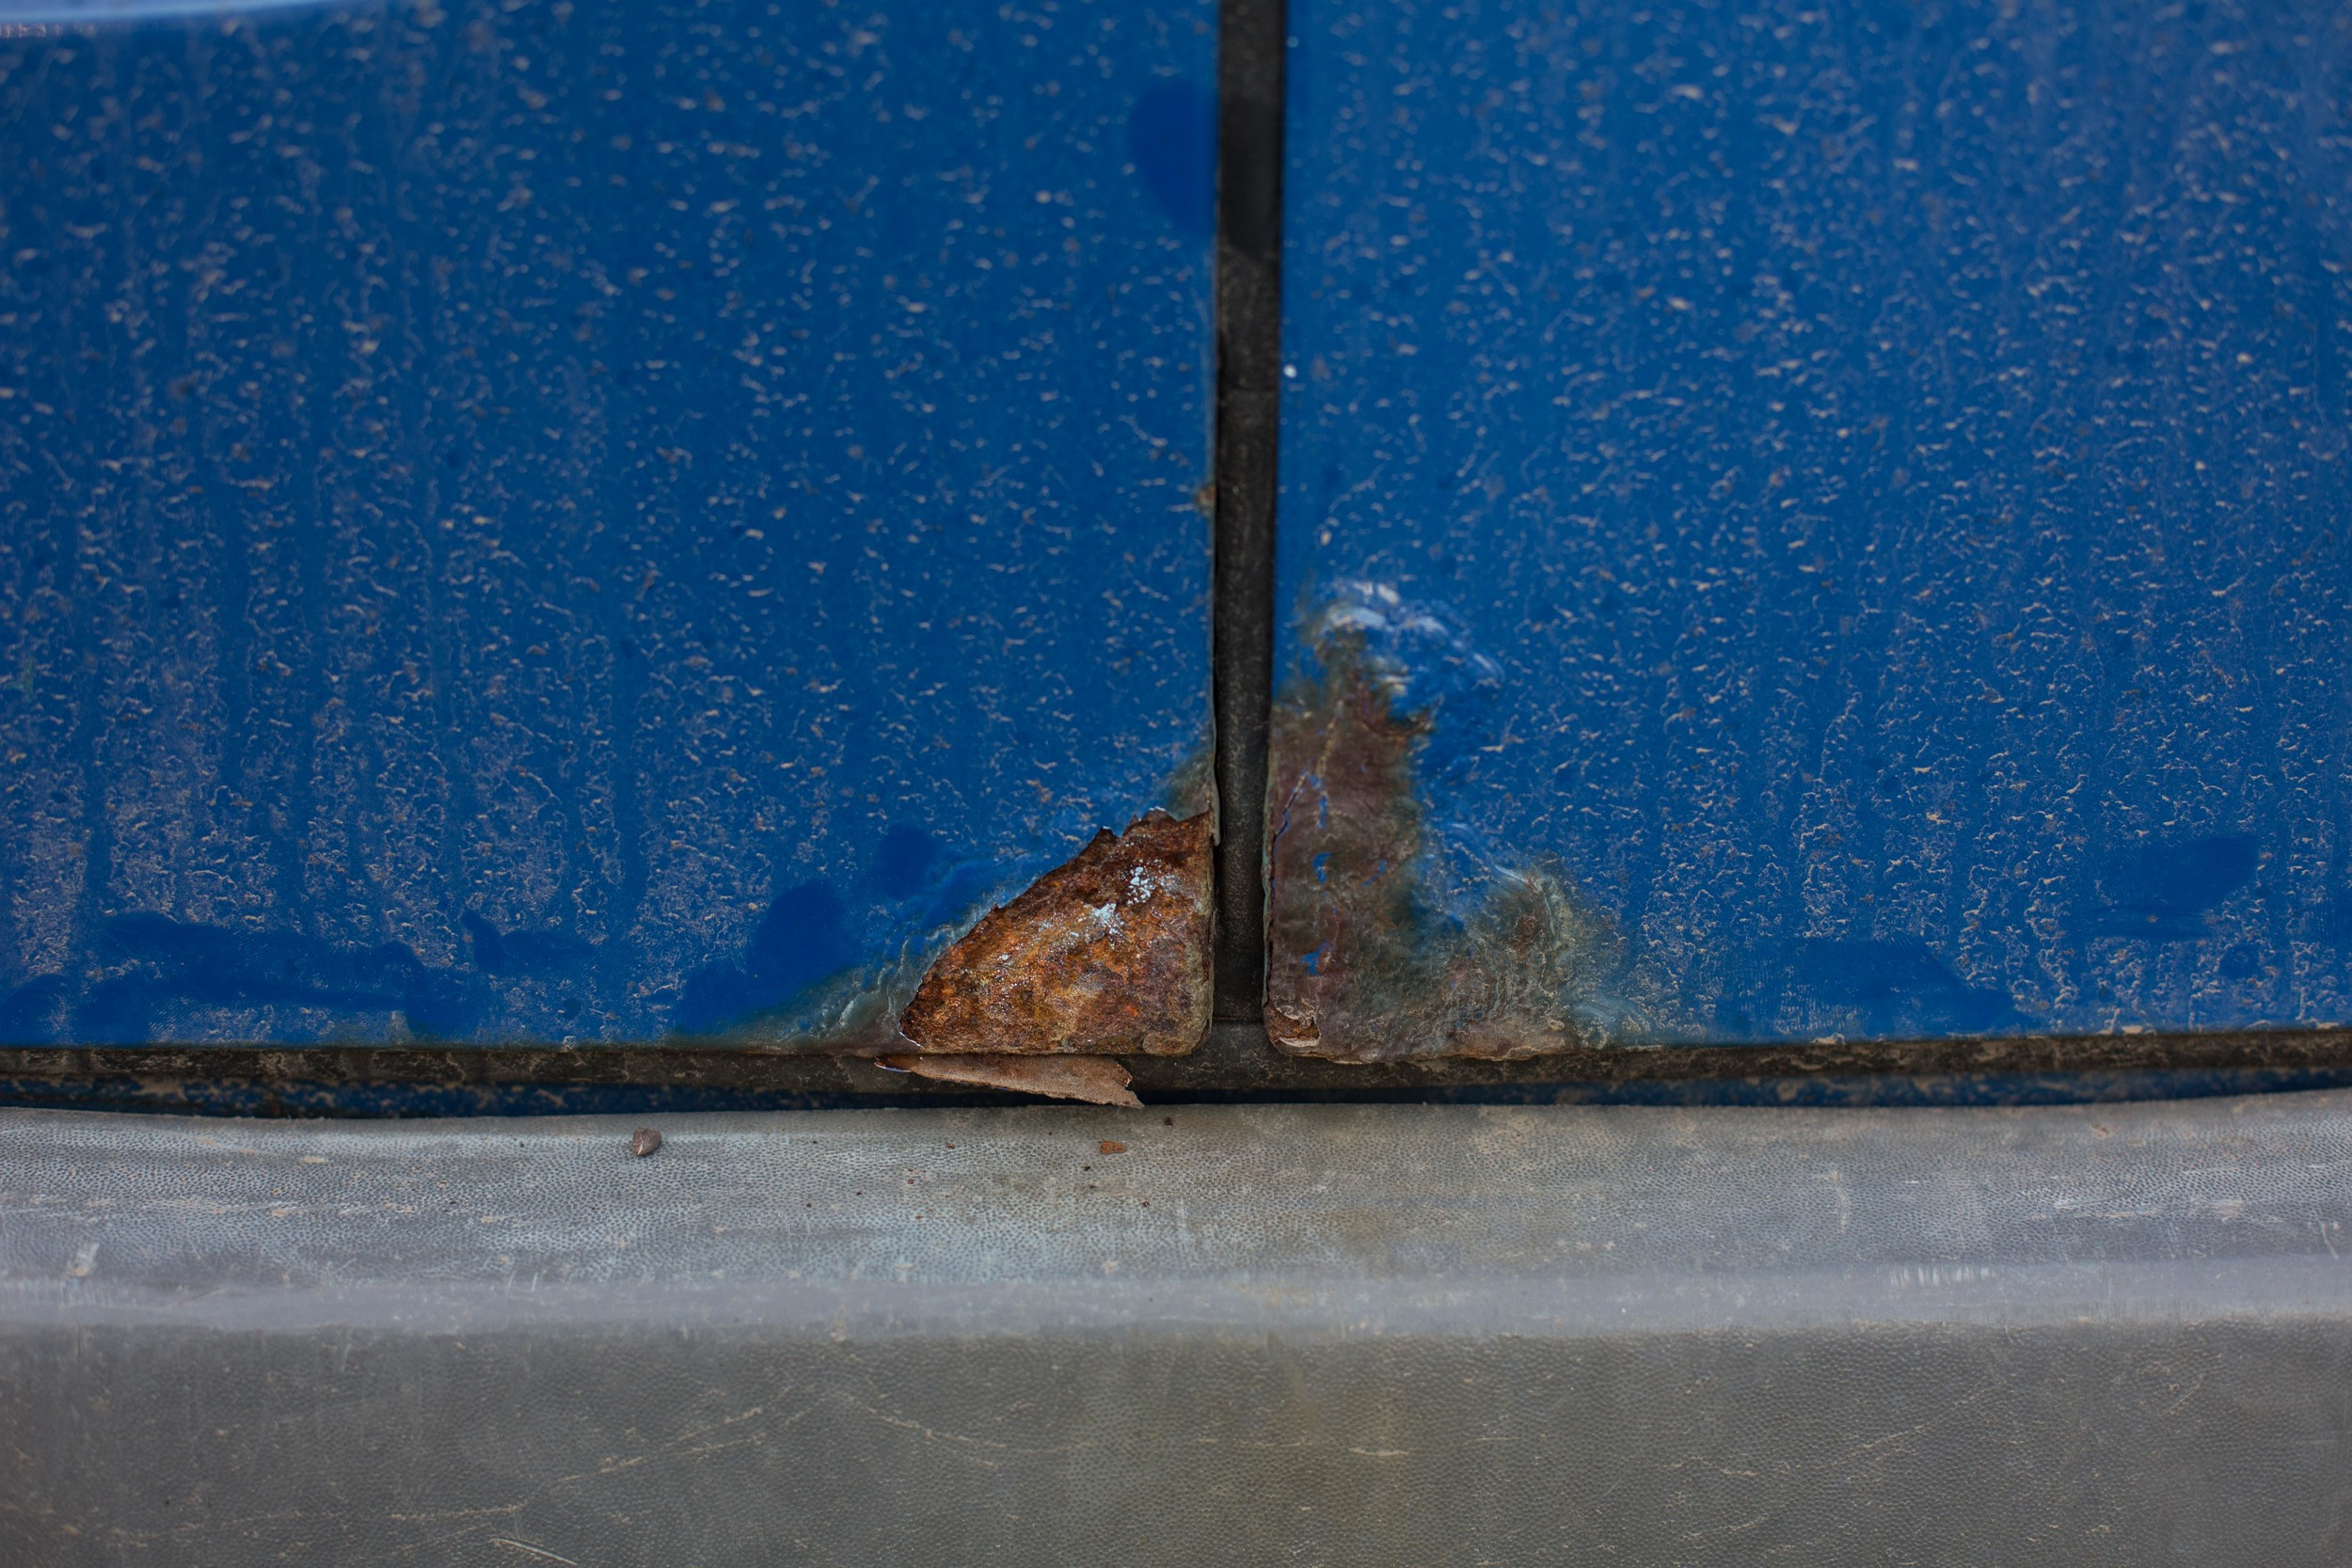 Corners of the rear door. After chipping away at the paint and rust, the metal had been eaten all the way through.